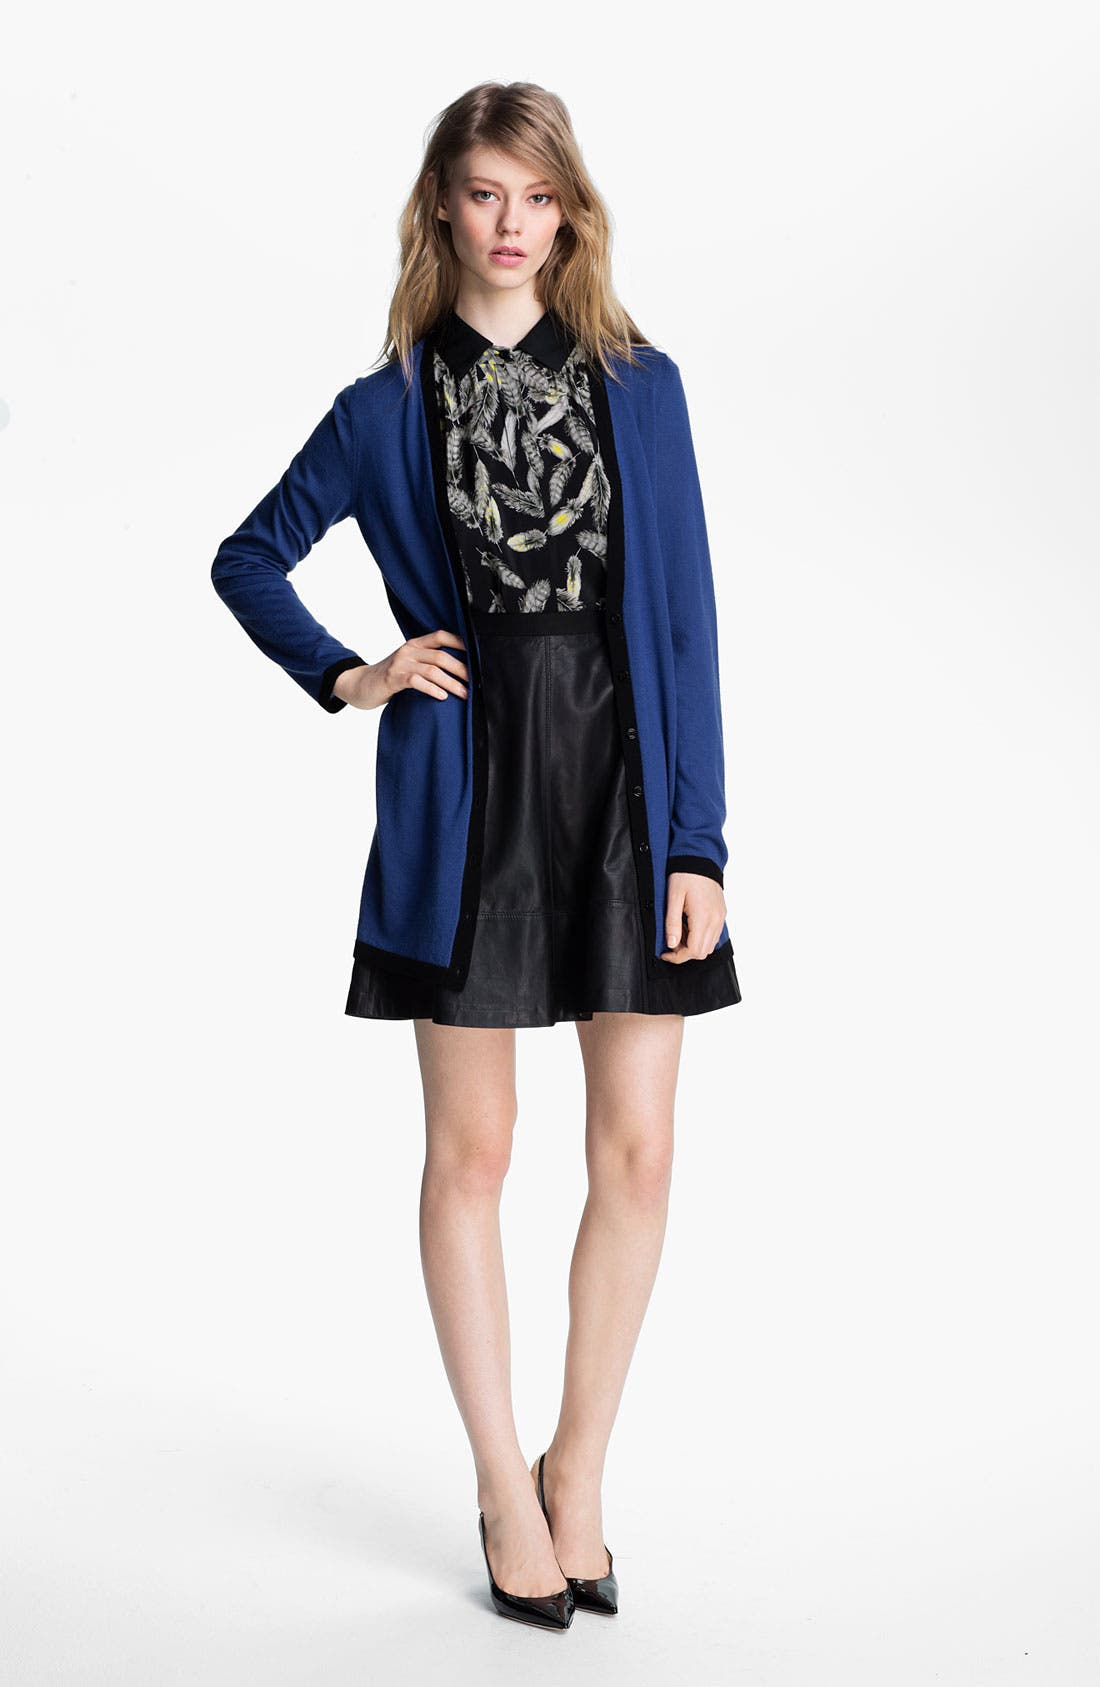 Alternate Image 1 Selected - Miss Wu 'Sofie' Color Tipped Cashmere Cardigan (Nordstrom Exclusive)